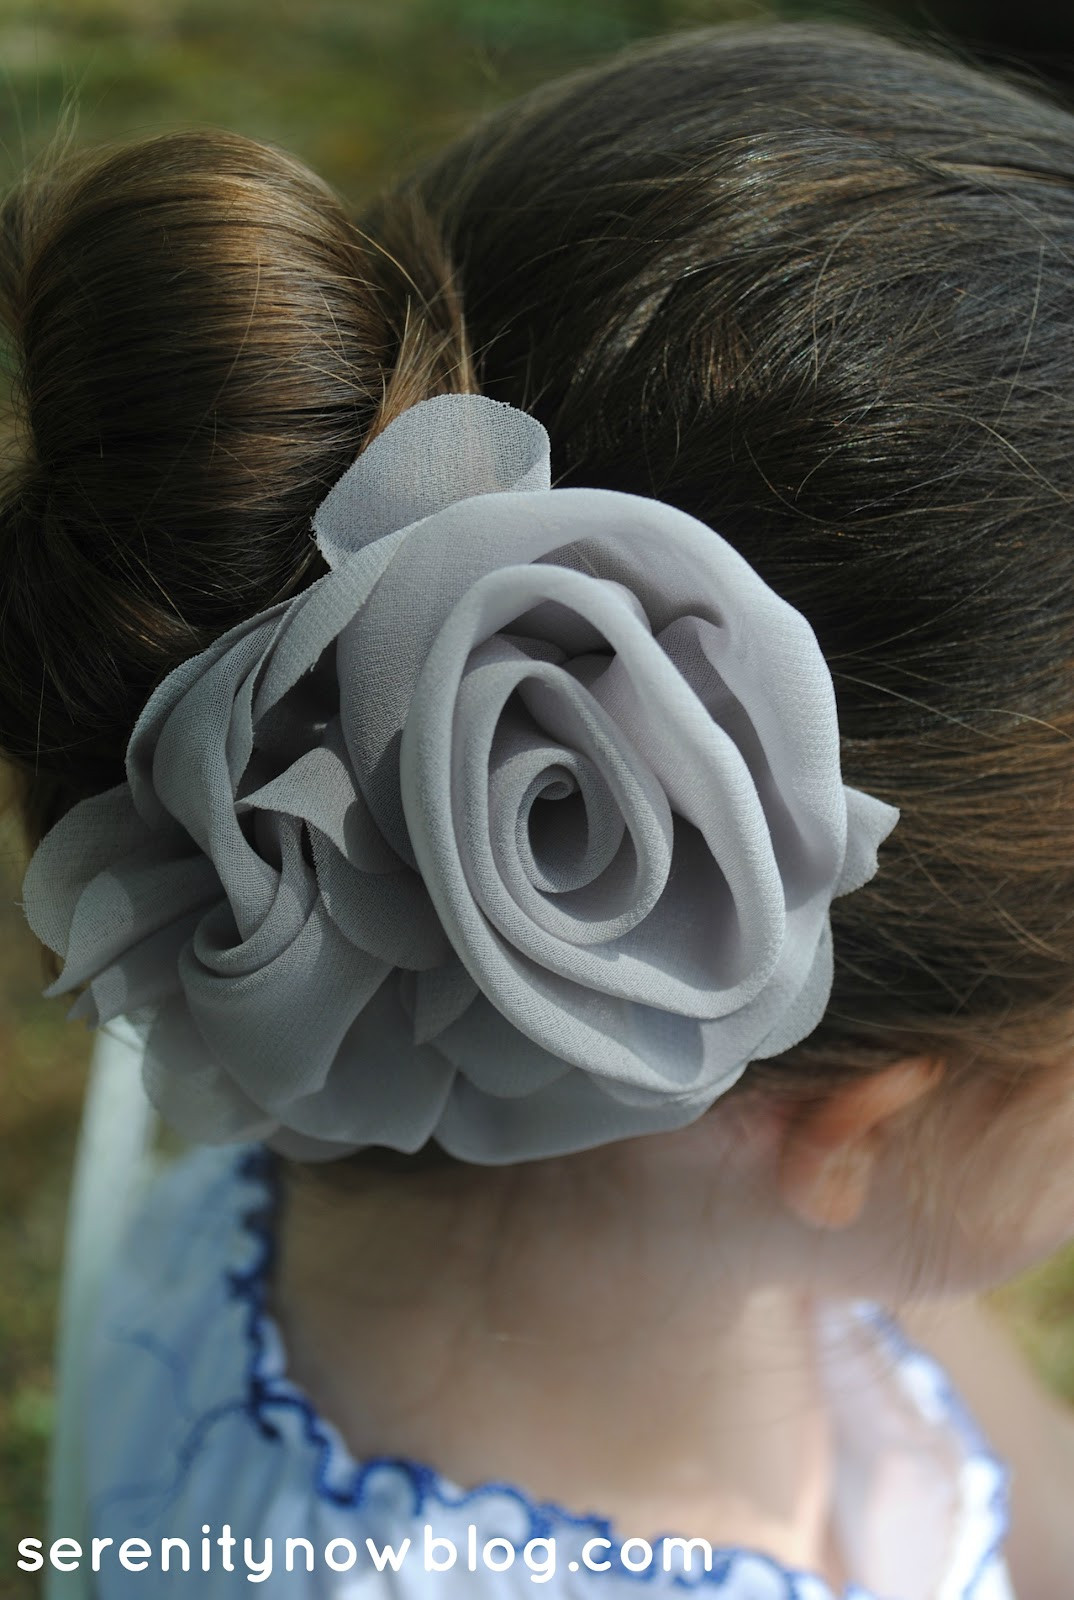 Best ideas about DIY Hair Clips . Save or Pin 25 DIY Hair Accessories to Make Now Now.